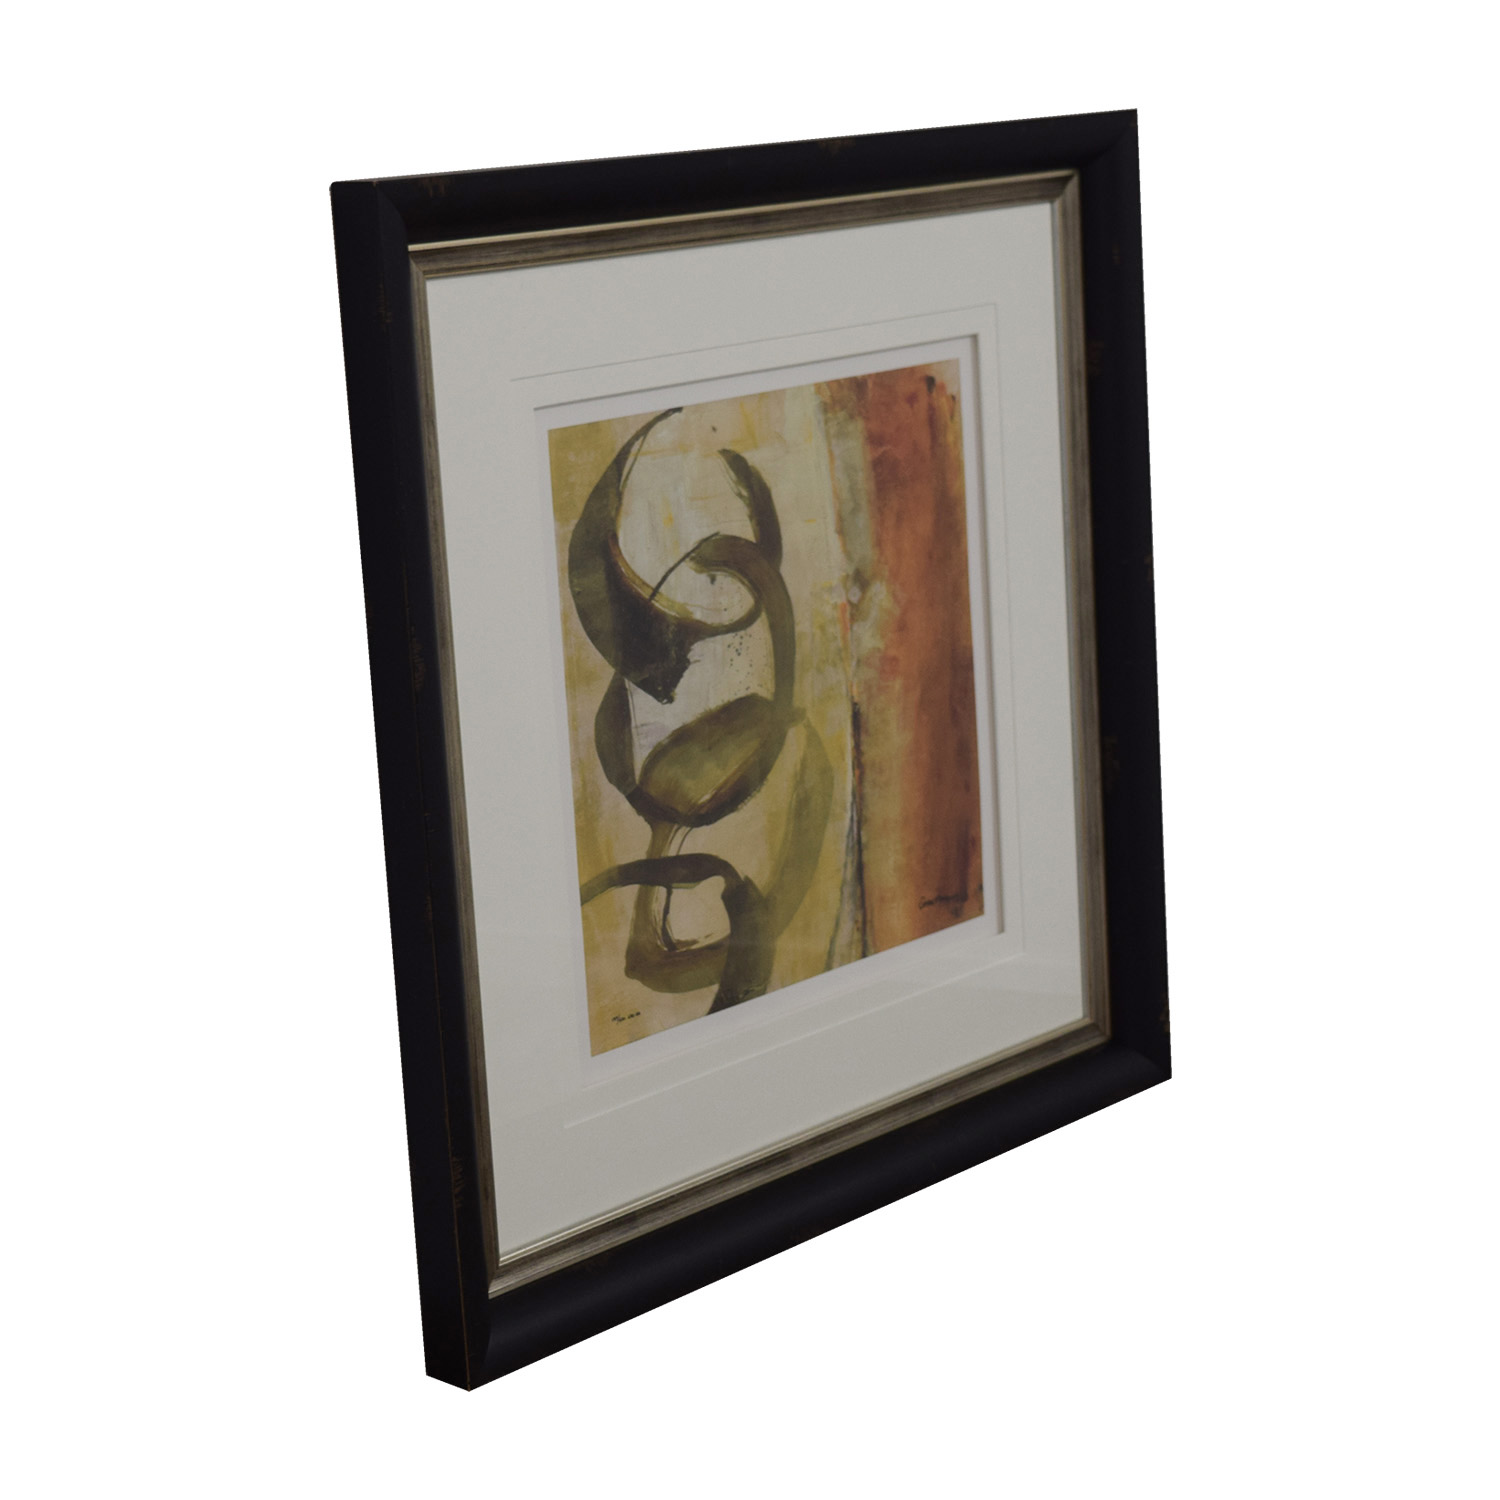 Giclee Framed Artwork on sale